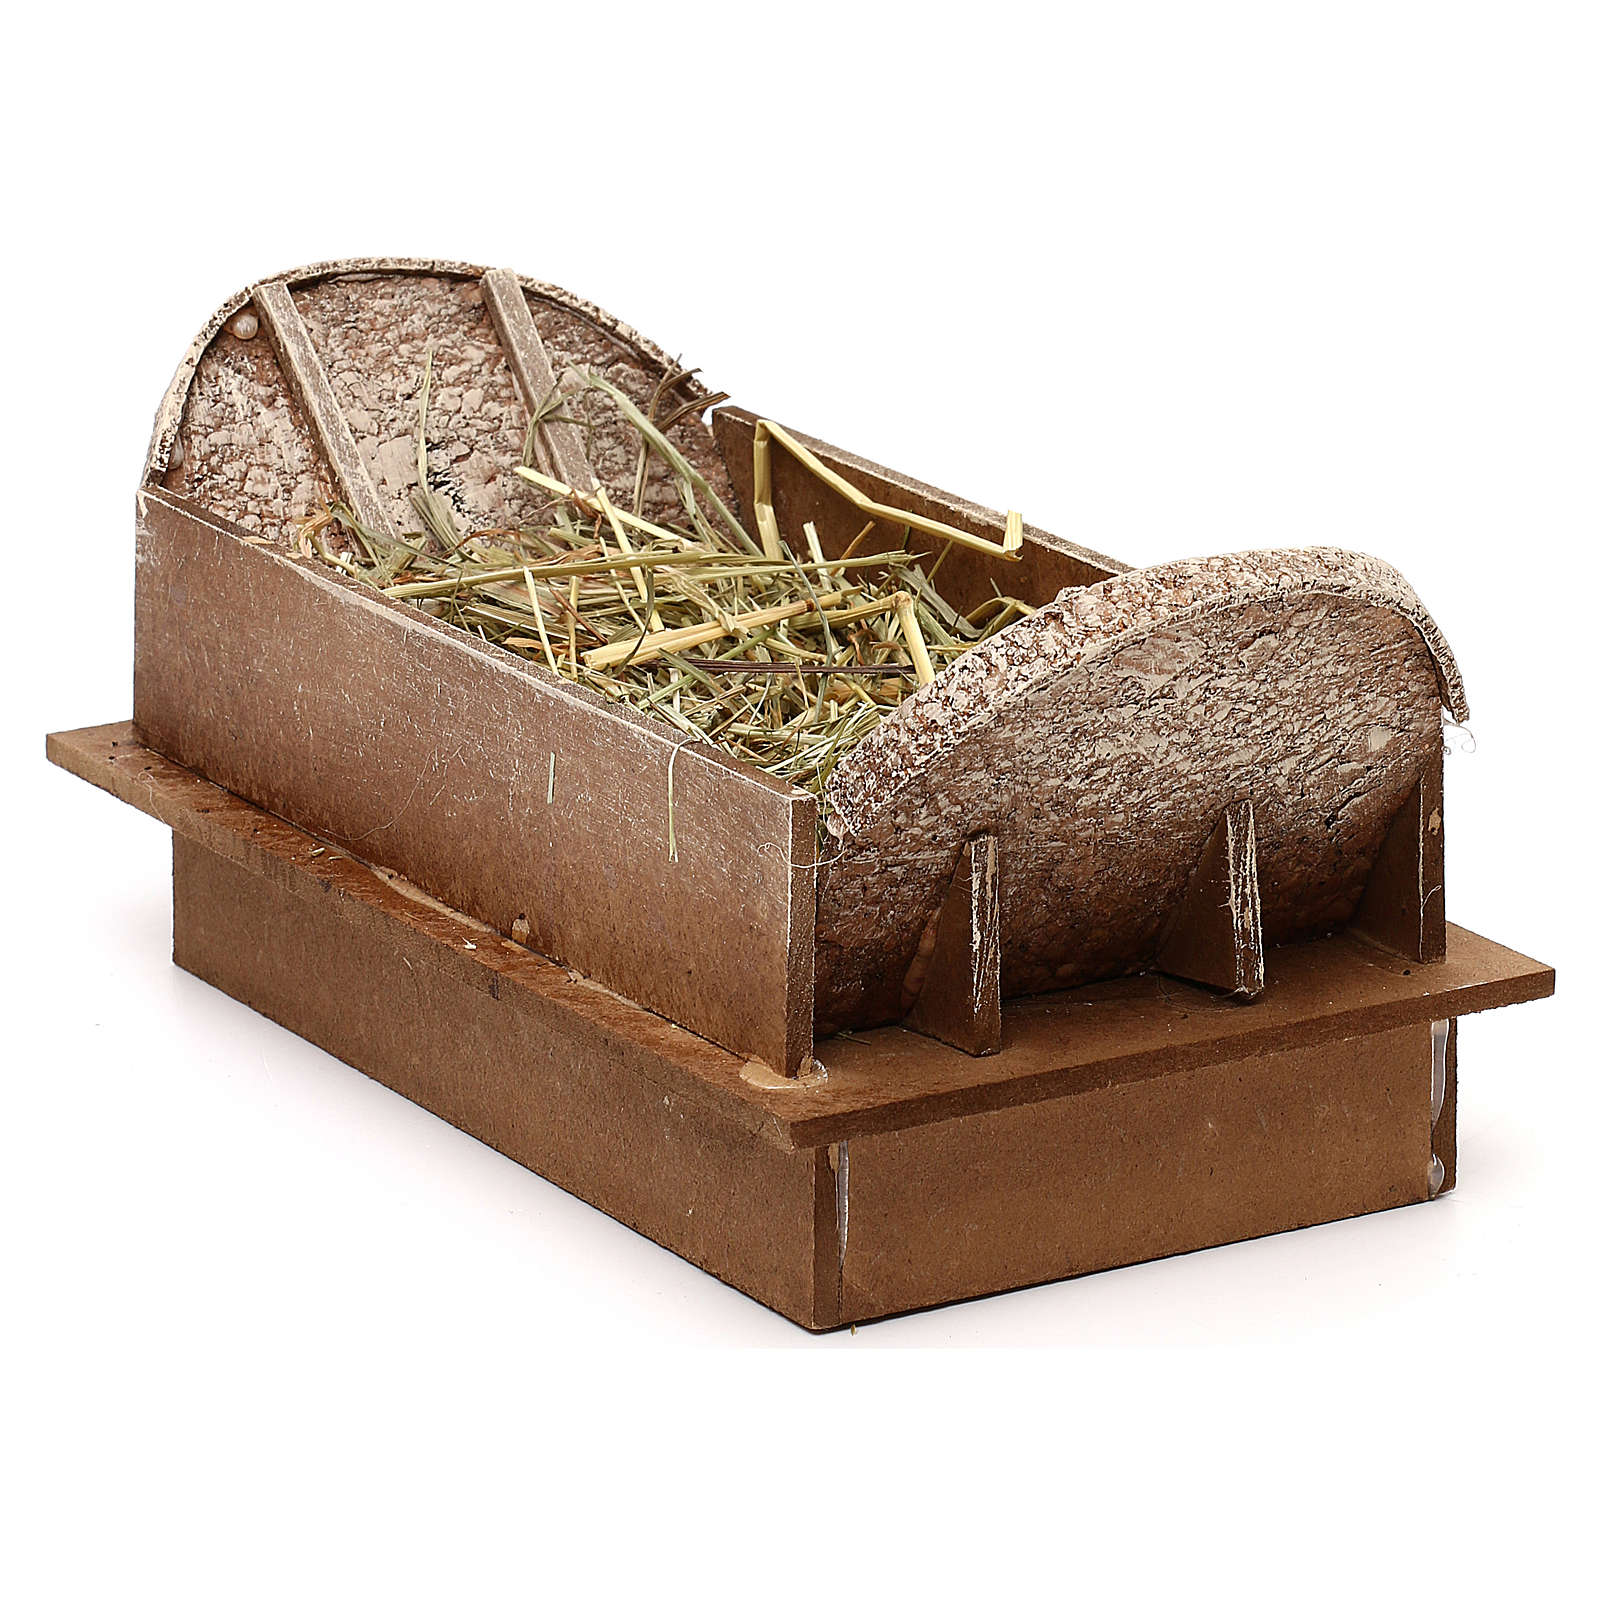 Cradle made of wood and straw for Nativity Scene 20 cm 3